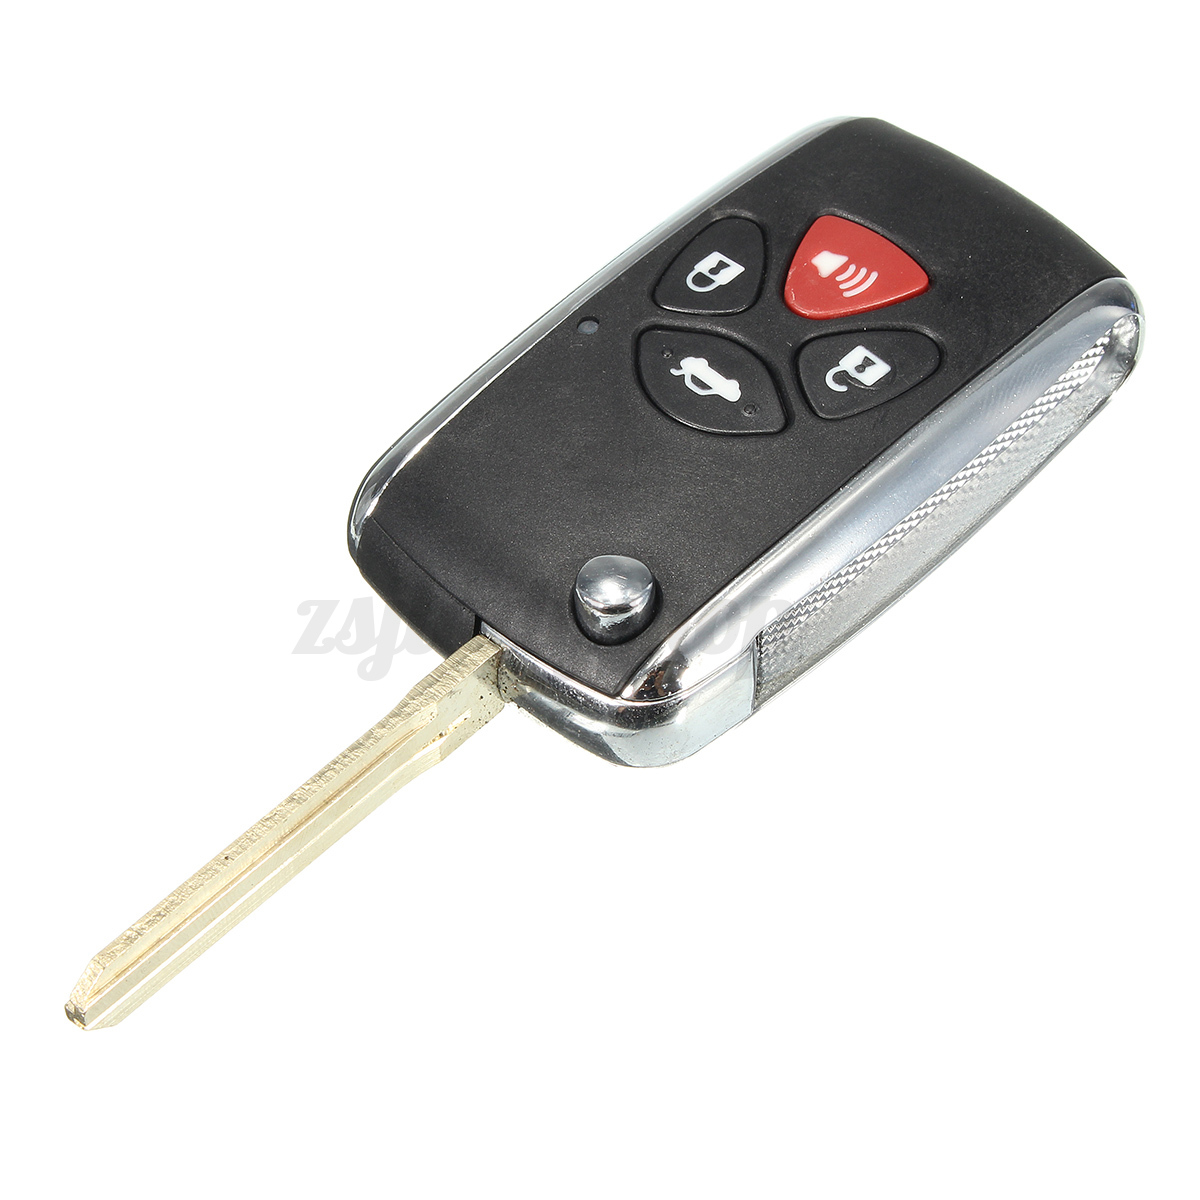 4 buttons remote key shell case flip fob for toyota camry avalon corolla rav4 ebay. Black Bedroom Furniture Sets. Home Design Ideas